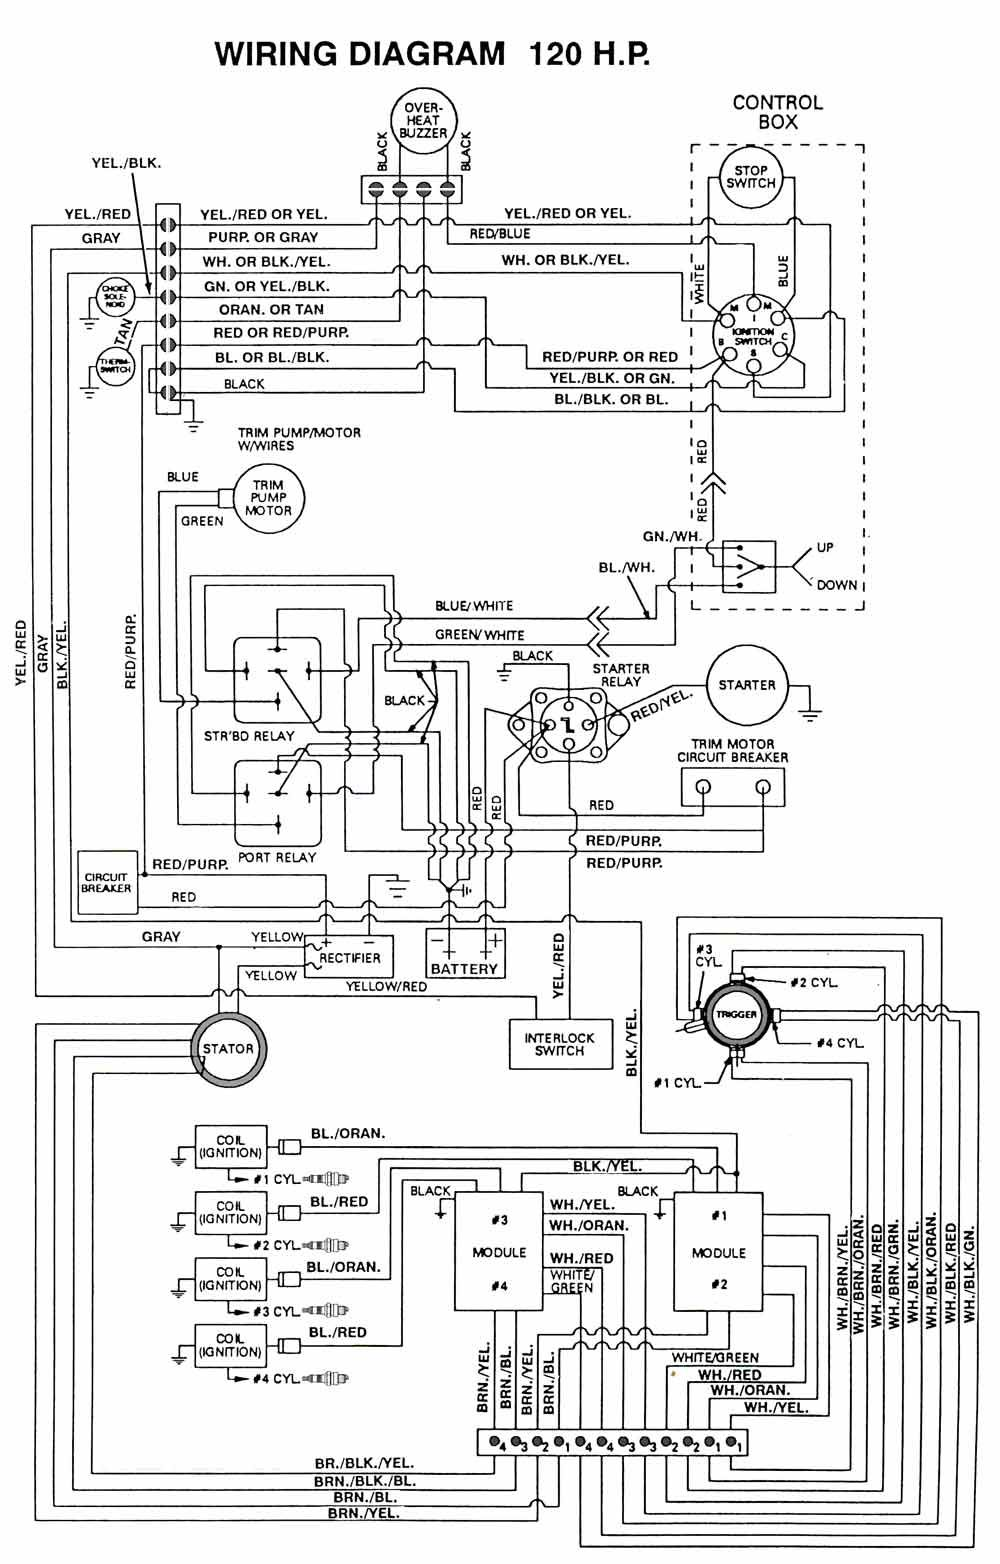 medium resolution of image result for wiring diagram for 1990 mercury force 120 hp outboard motor